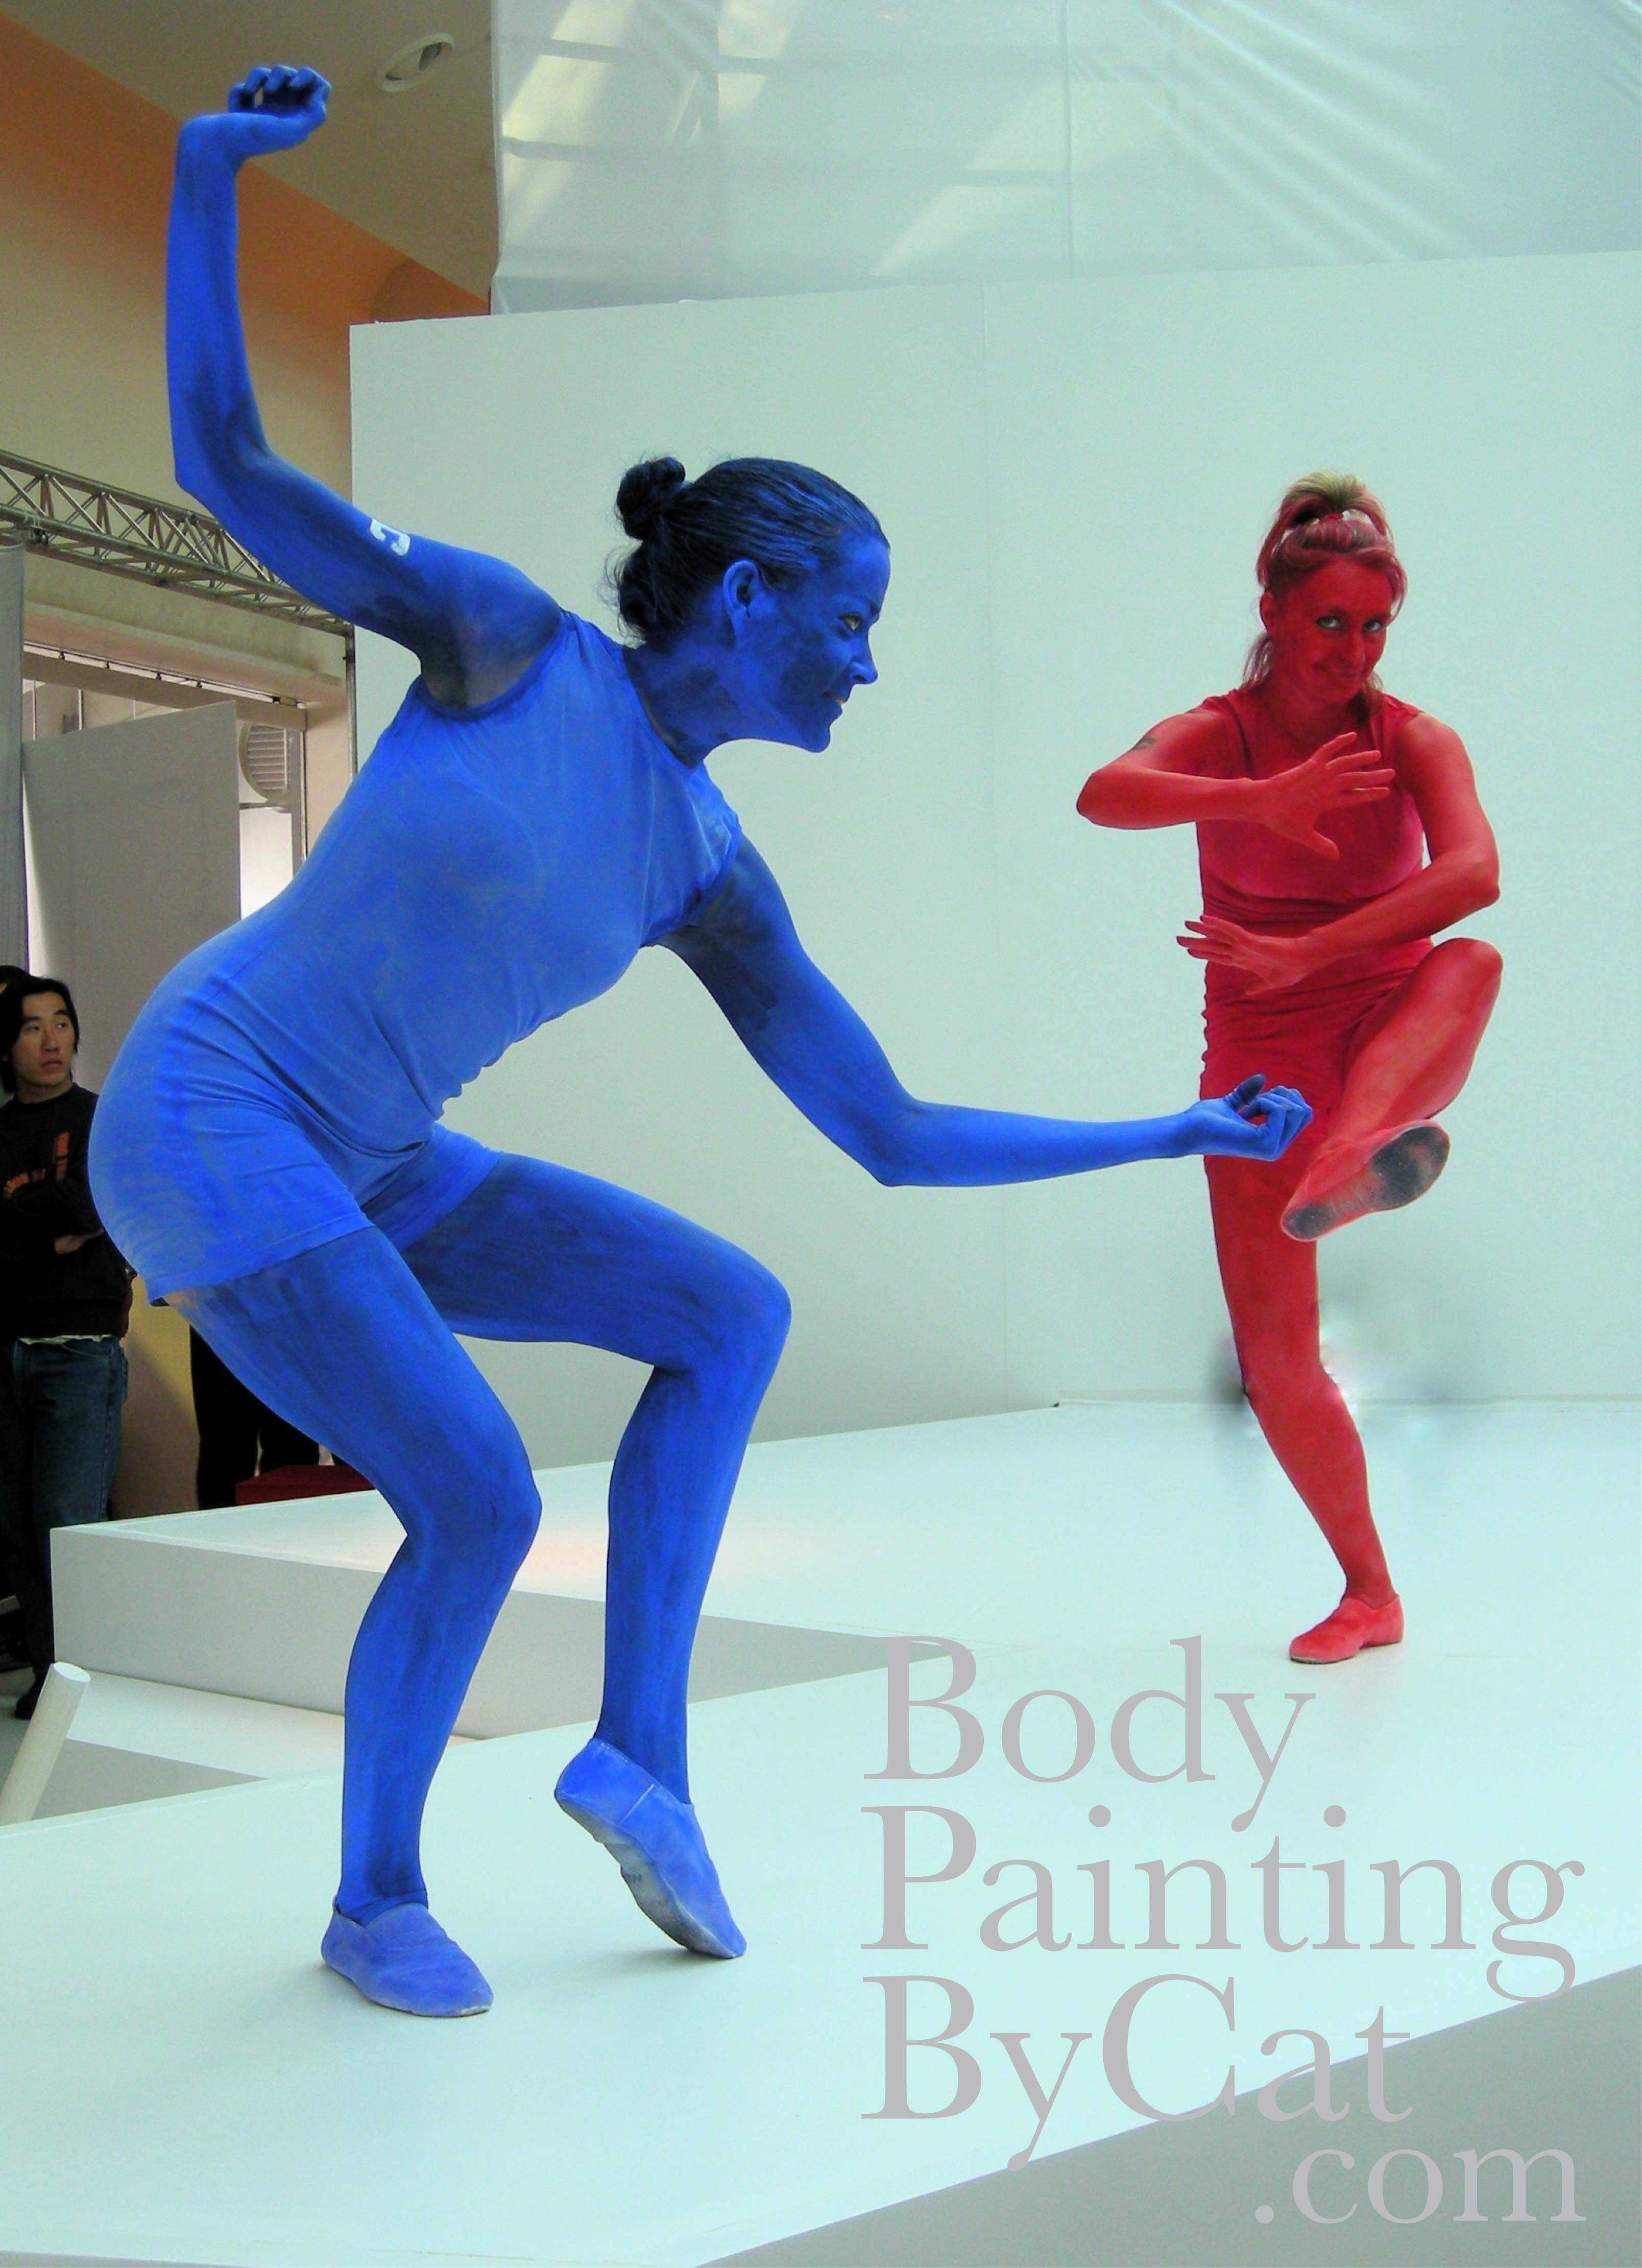 Jvc Red Blue Bodypaint Statues Dance Bpc Body Painting